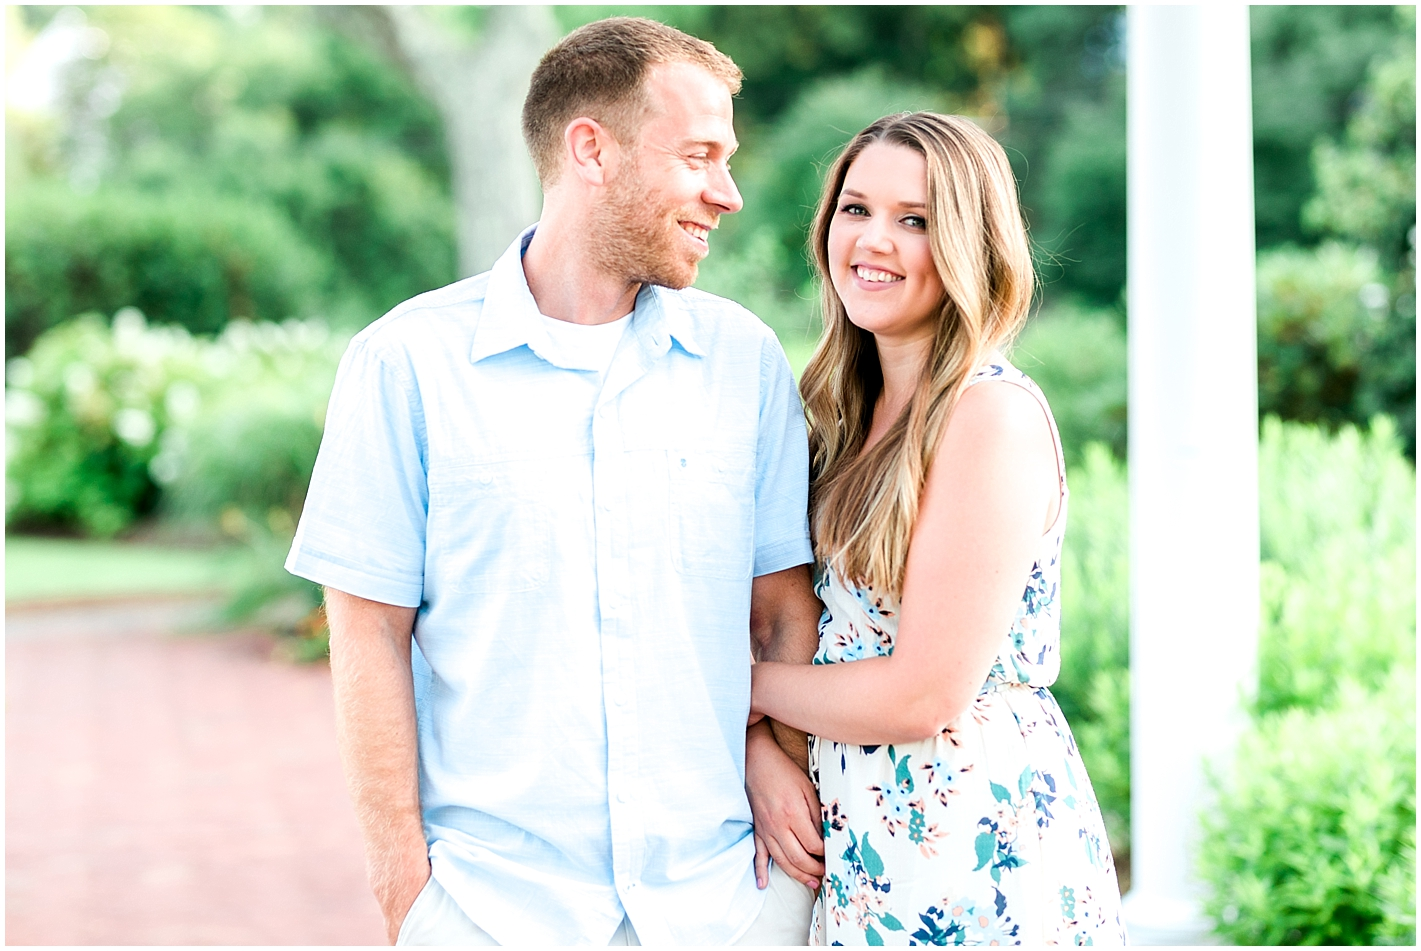 Brewsters Garden Engagement Session Plymouth MA Photos by Alyssa Parker Photography